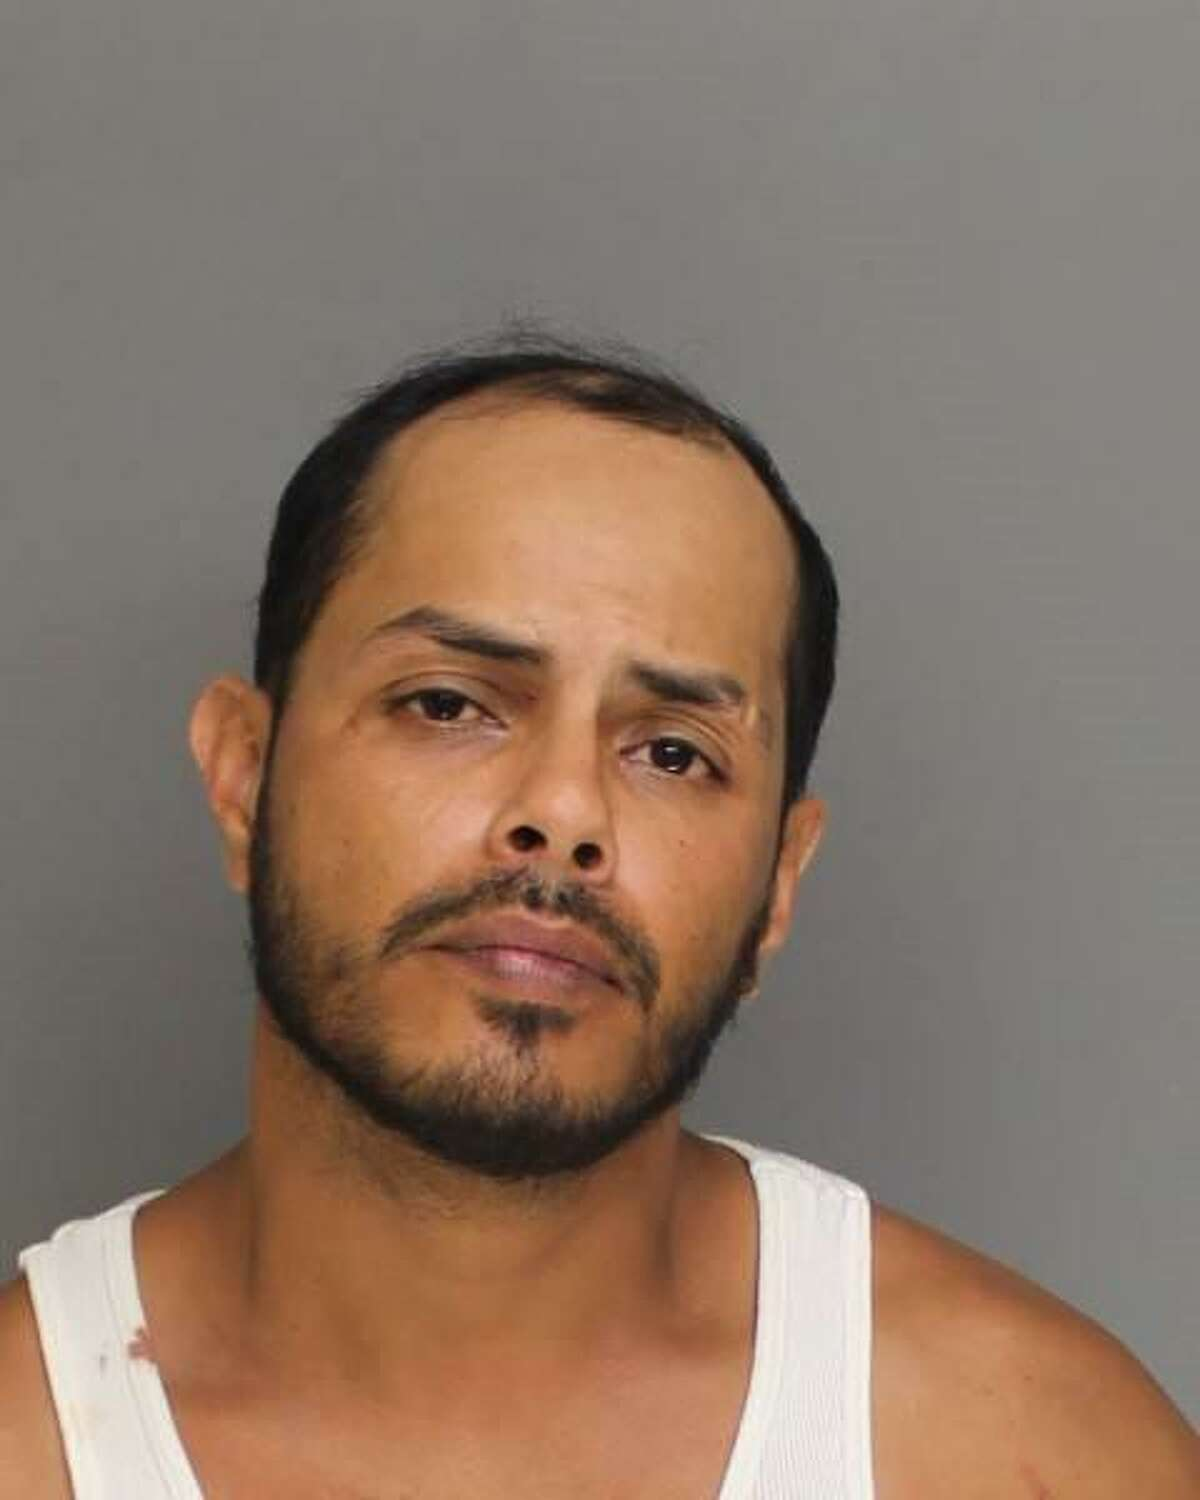 Victor E. Crespo was detained and charged with criminal attempt at murder, first-degree assault, first-degree burglary and disorderly conduct. His bond was set at $90,500.